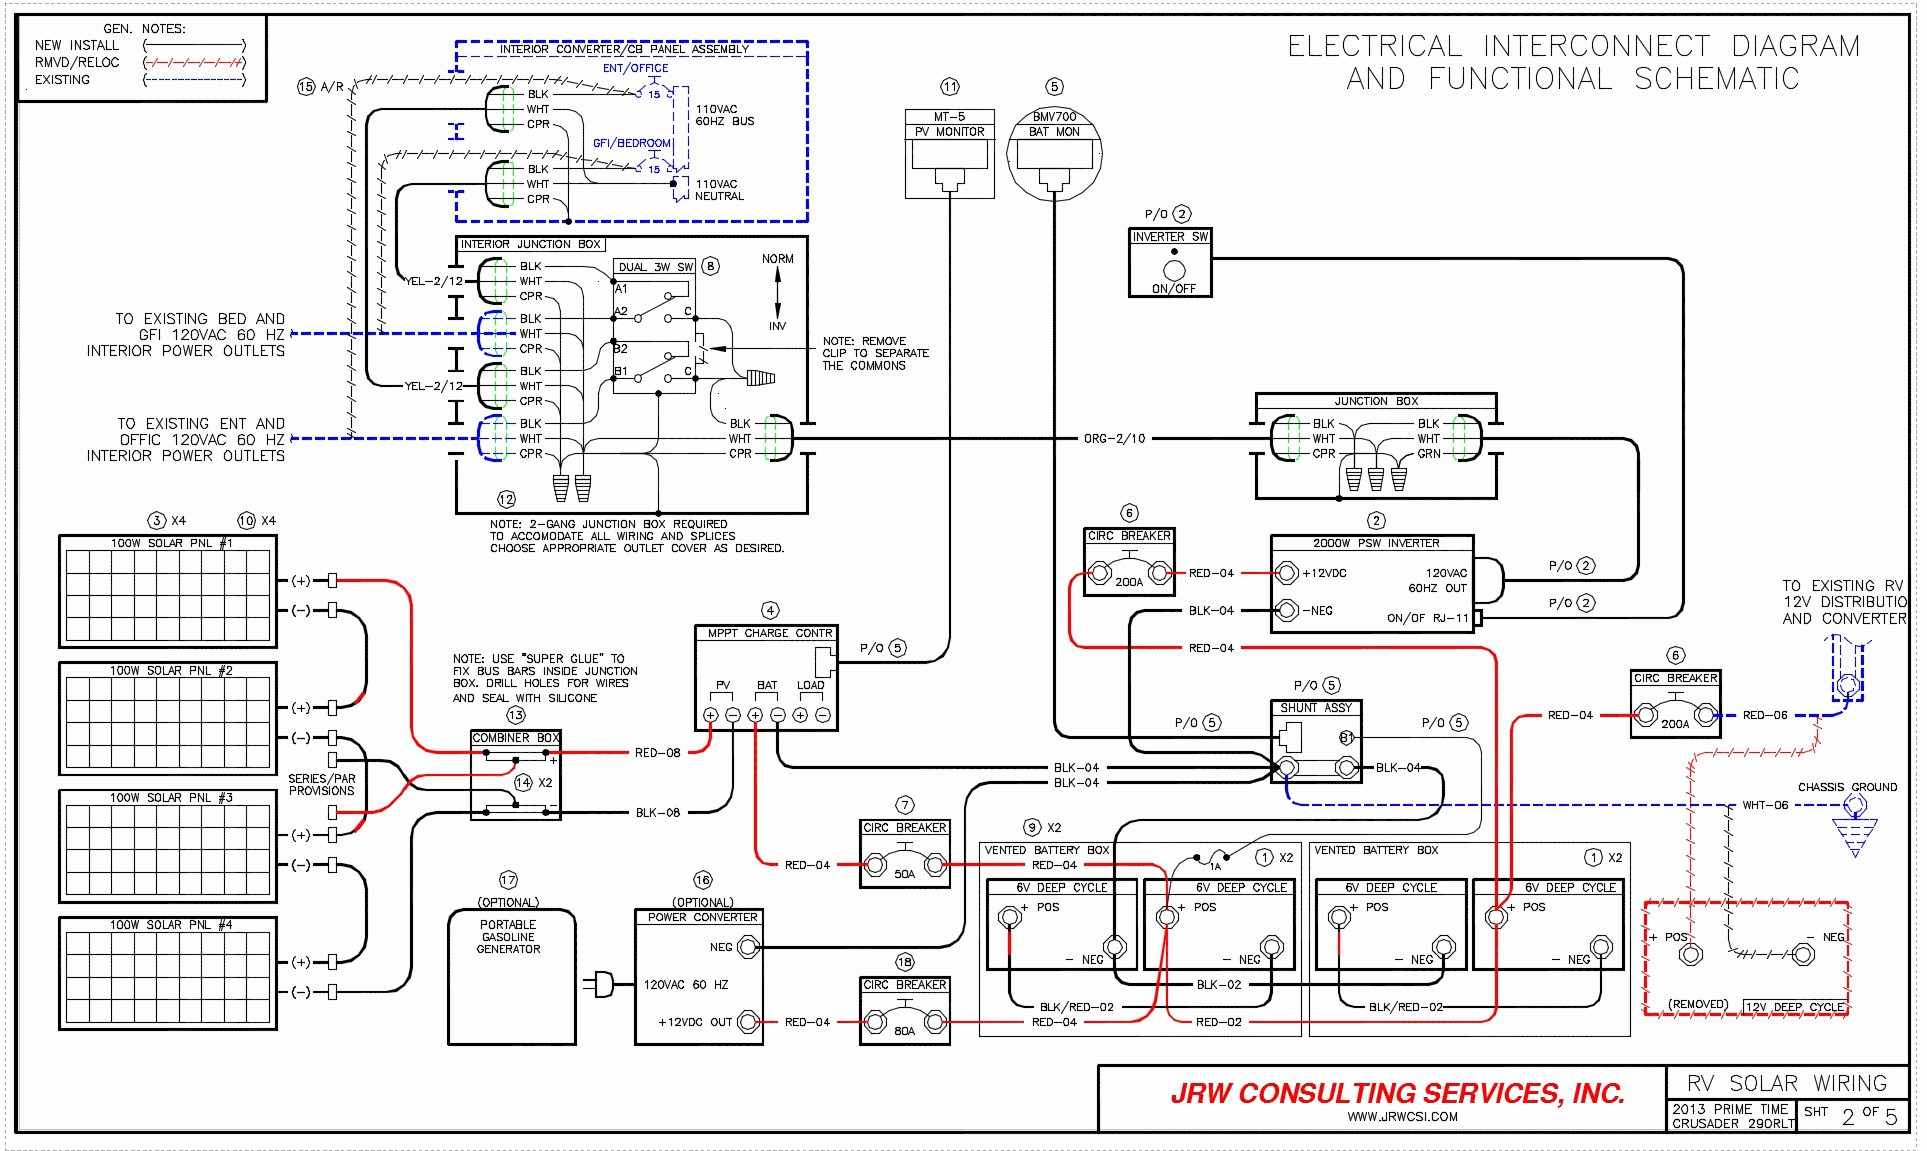 DIAGRAM] Jayco Fifth Wheel Wiring Diagram FULL Version HD Quality Wiring  Diagram - COREVALUESWIRING.HISTOWEB.FRhistoweb.fr